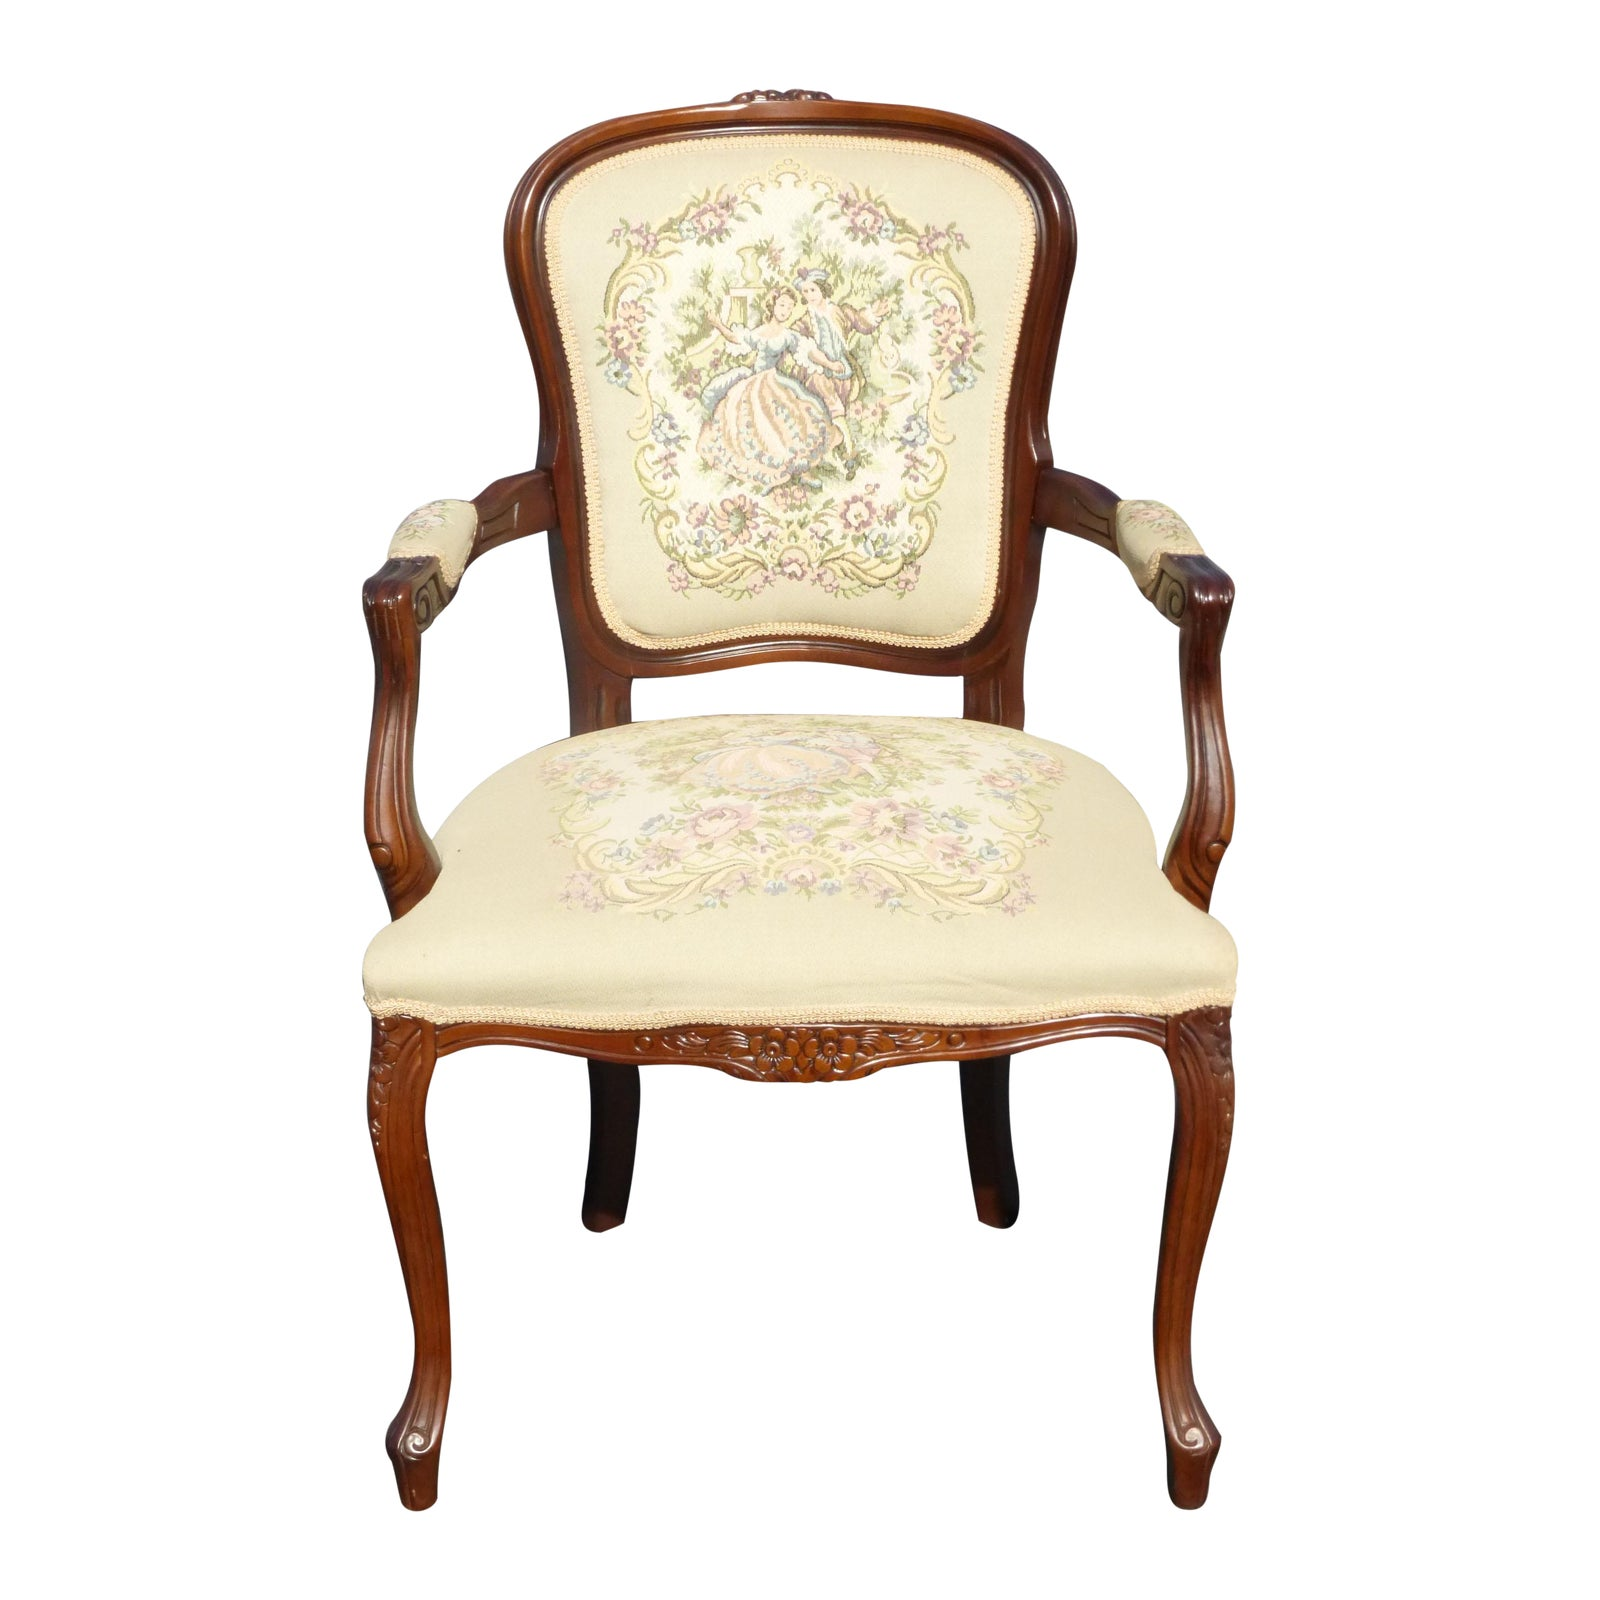 French Country Carved Wood Tapestry White Chair Chairish